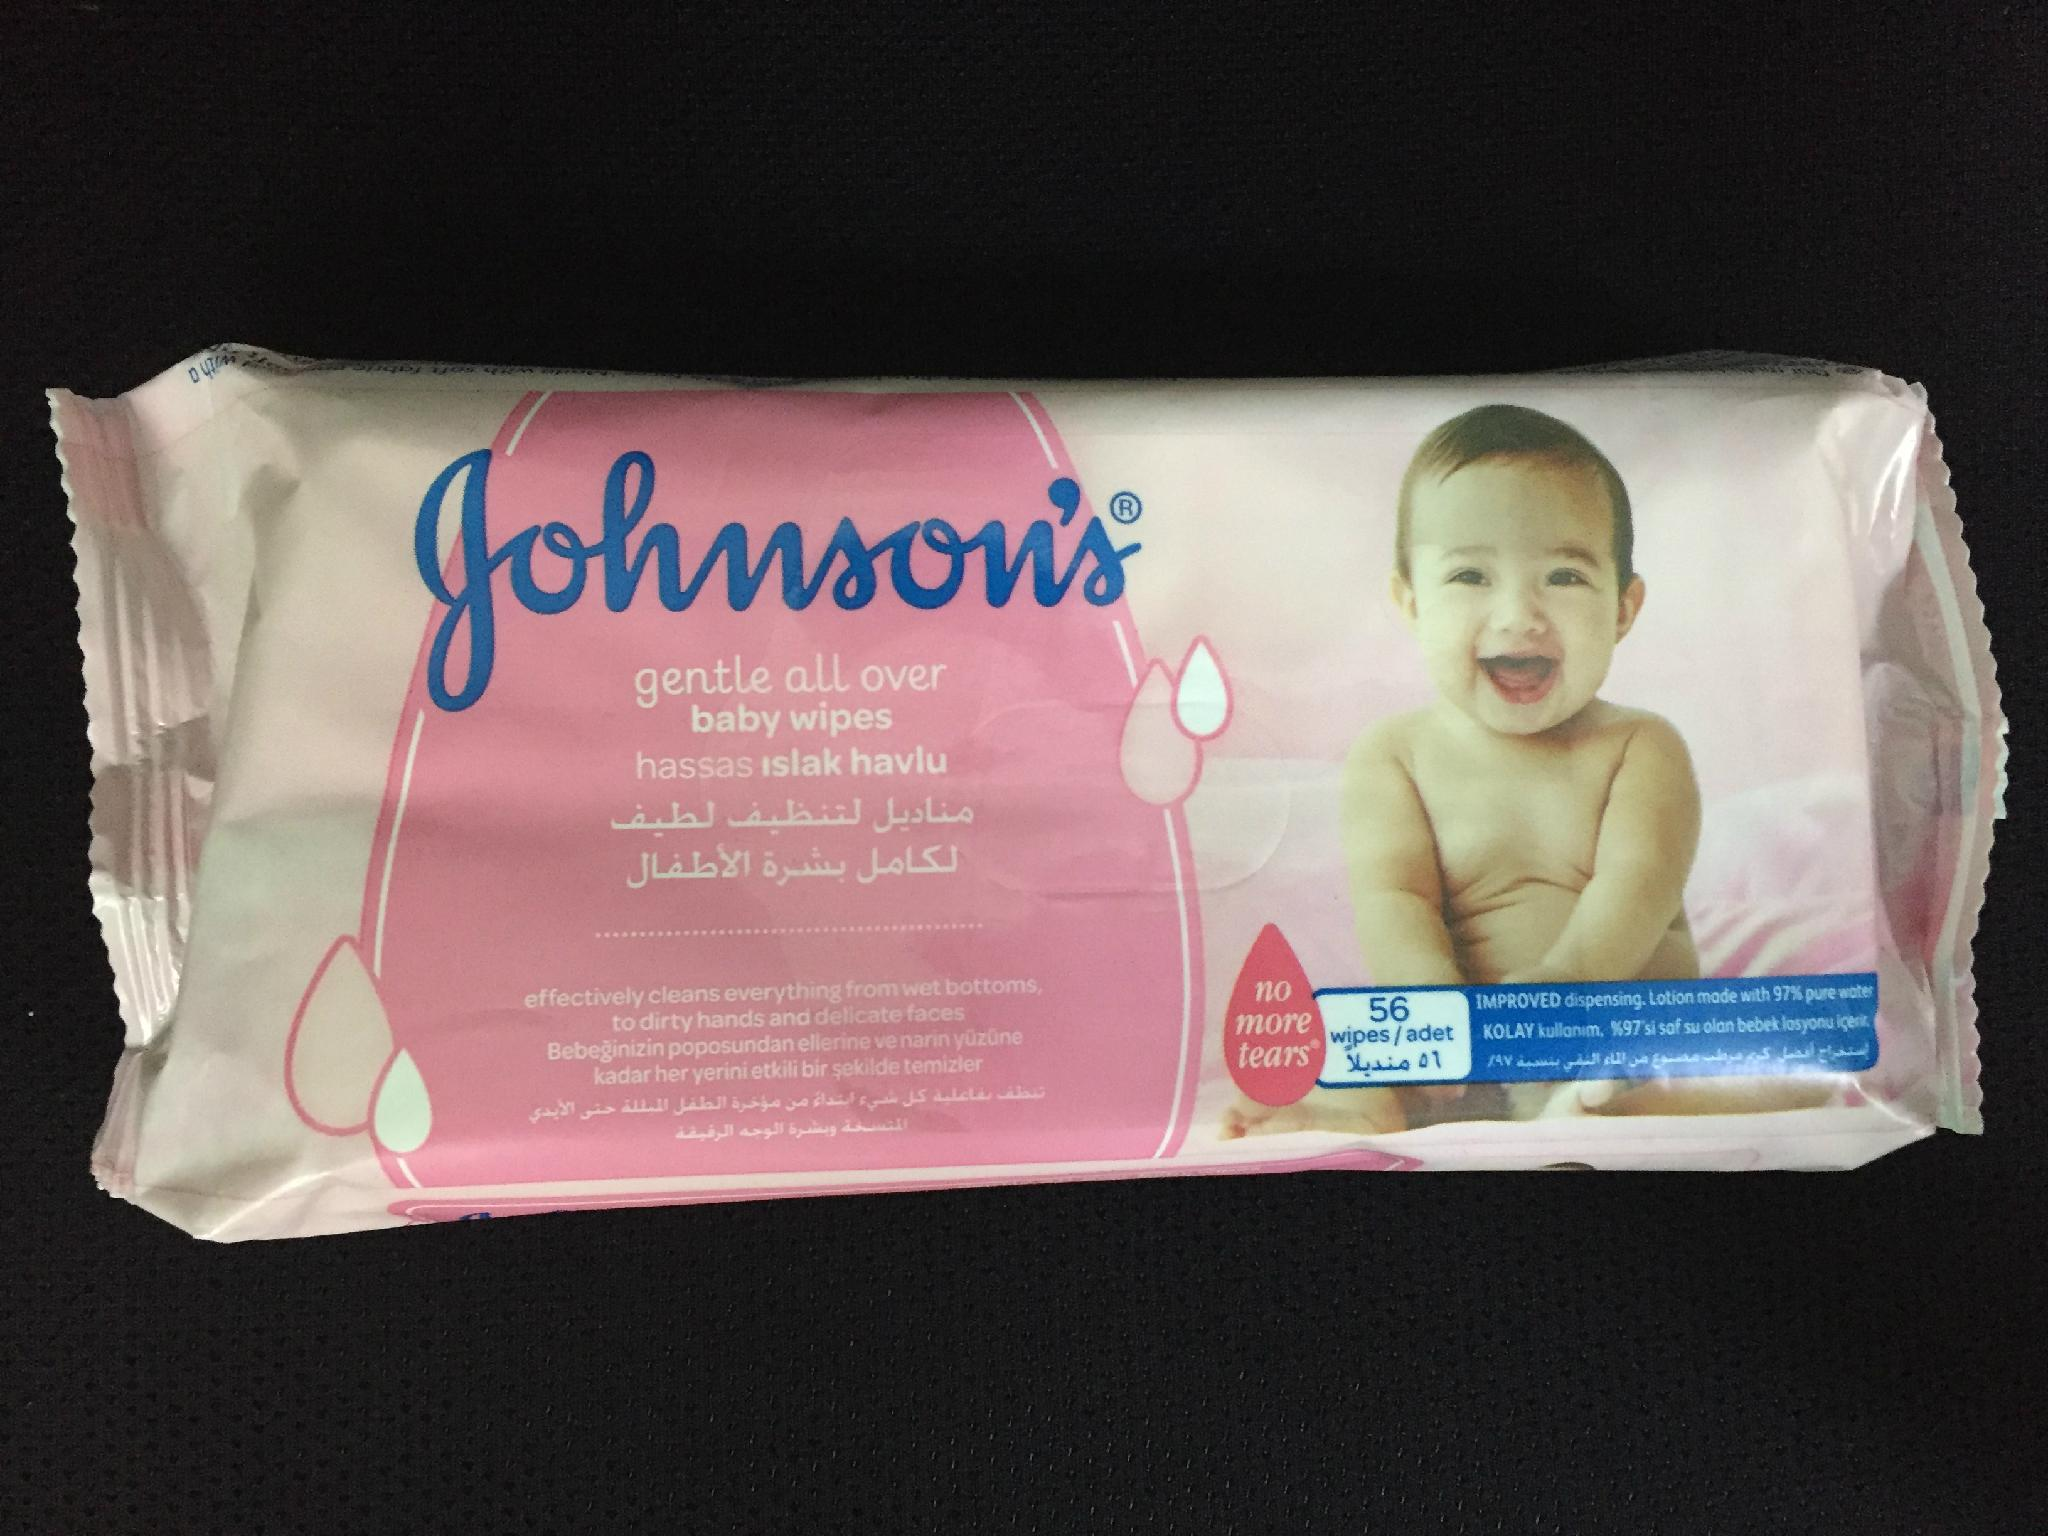 JHONSON'S GENTLE ALL OVER BABY WIPES 56'S 1